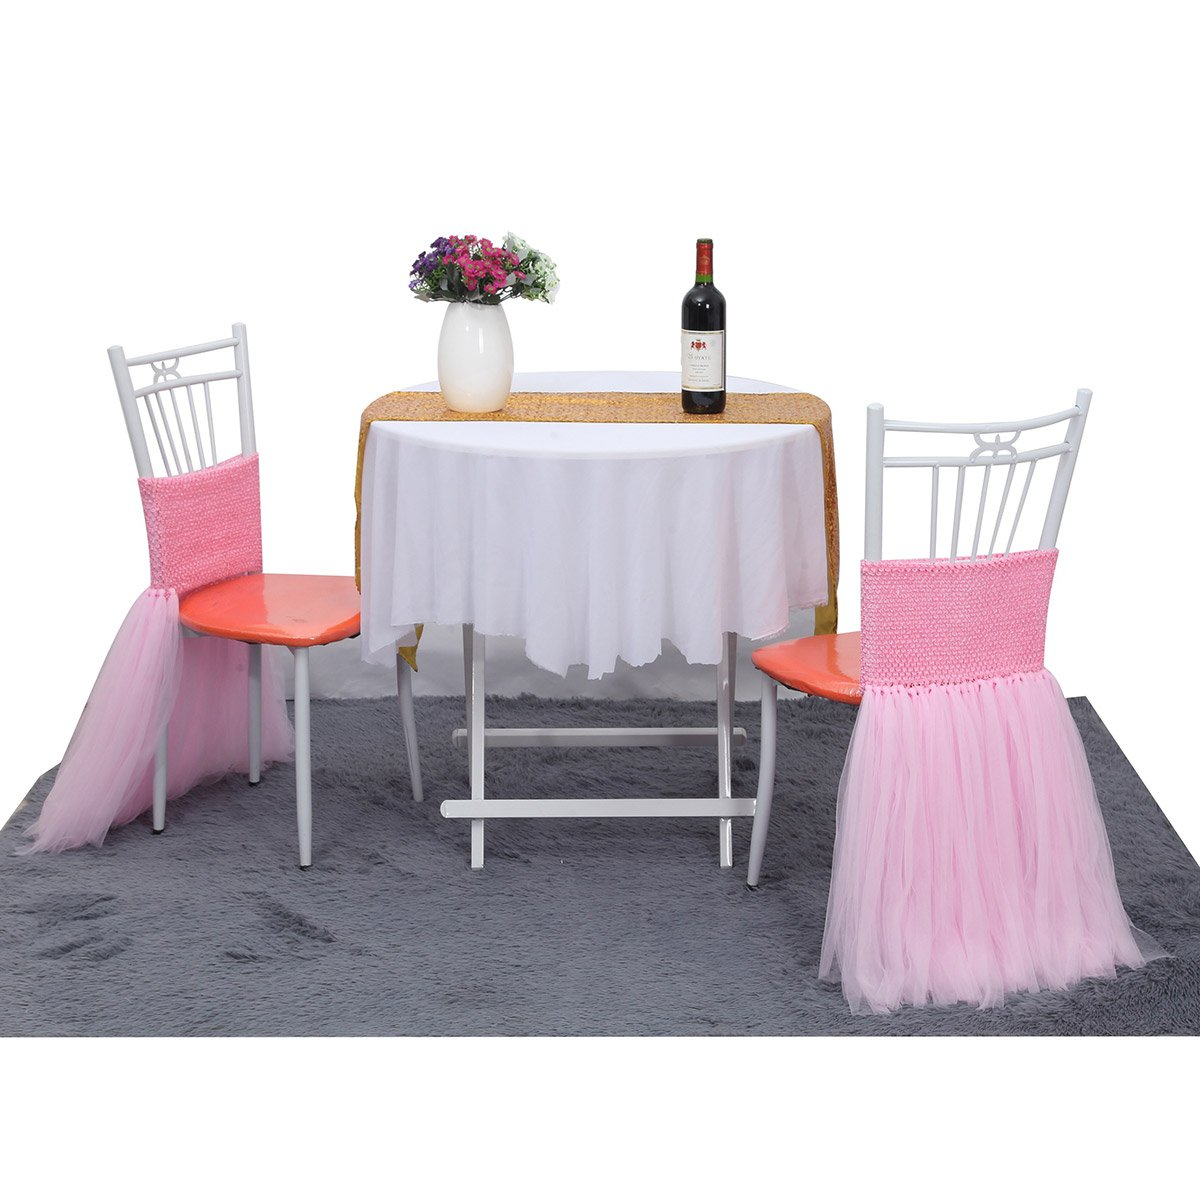 Suppromo Fluffy Tutu Chair Skirt For Party,Wedding,Birthday Party&Home Decoration (Pink)